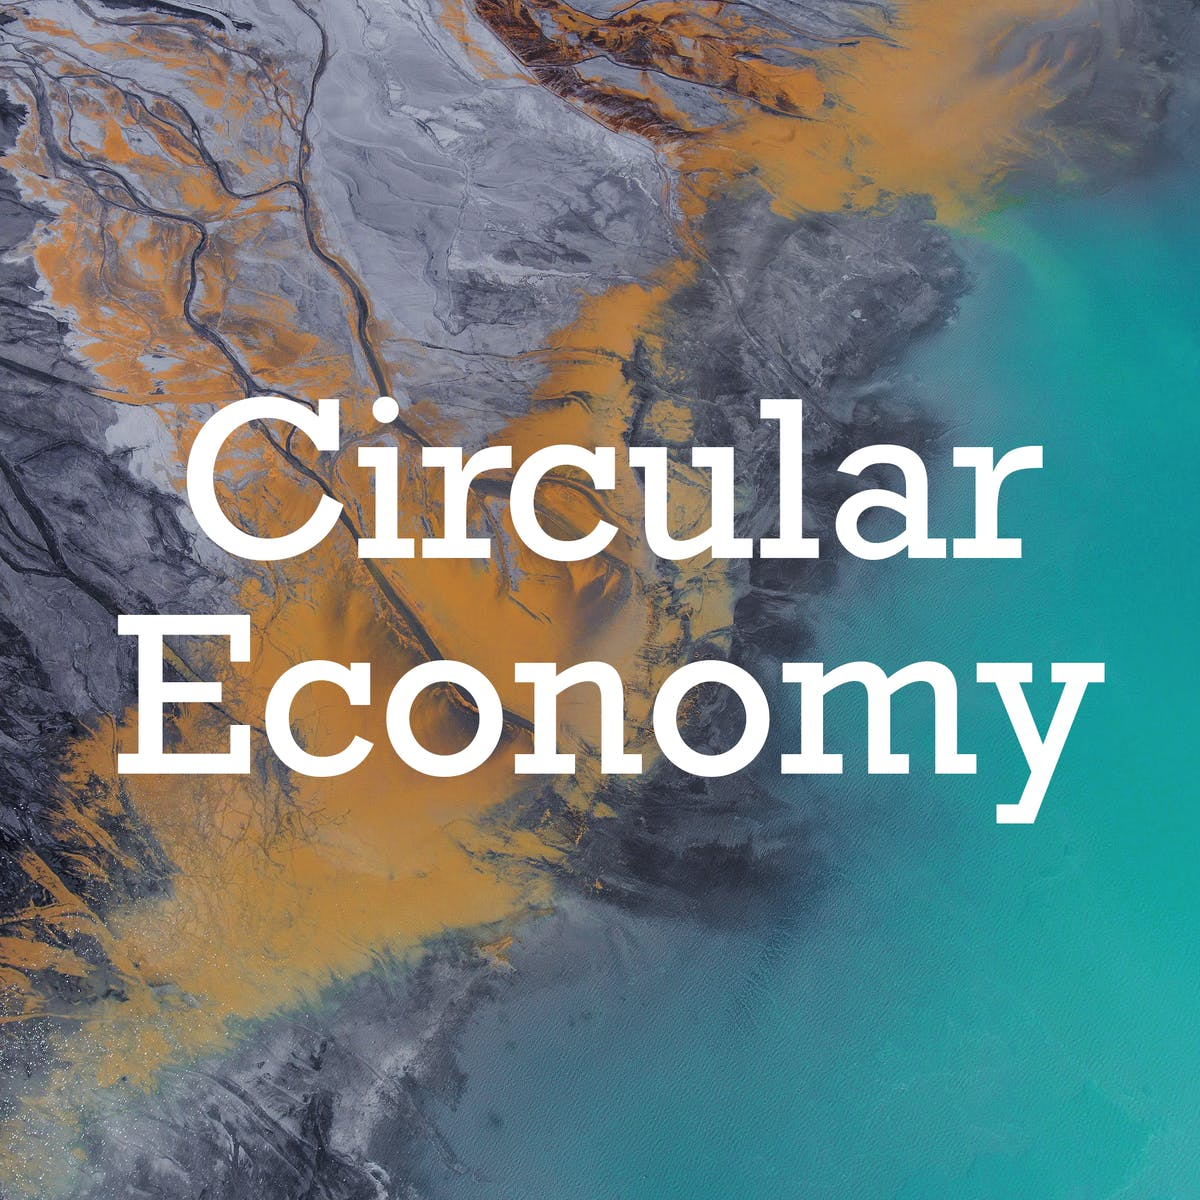 Circular Economy - Sustainable Materials Management